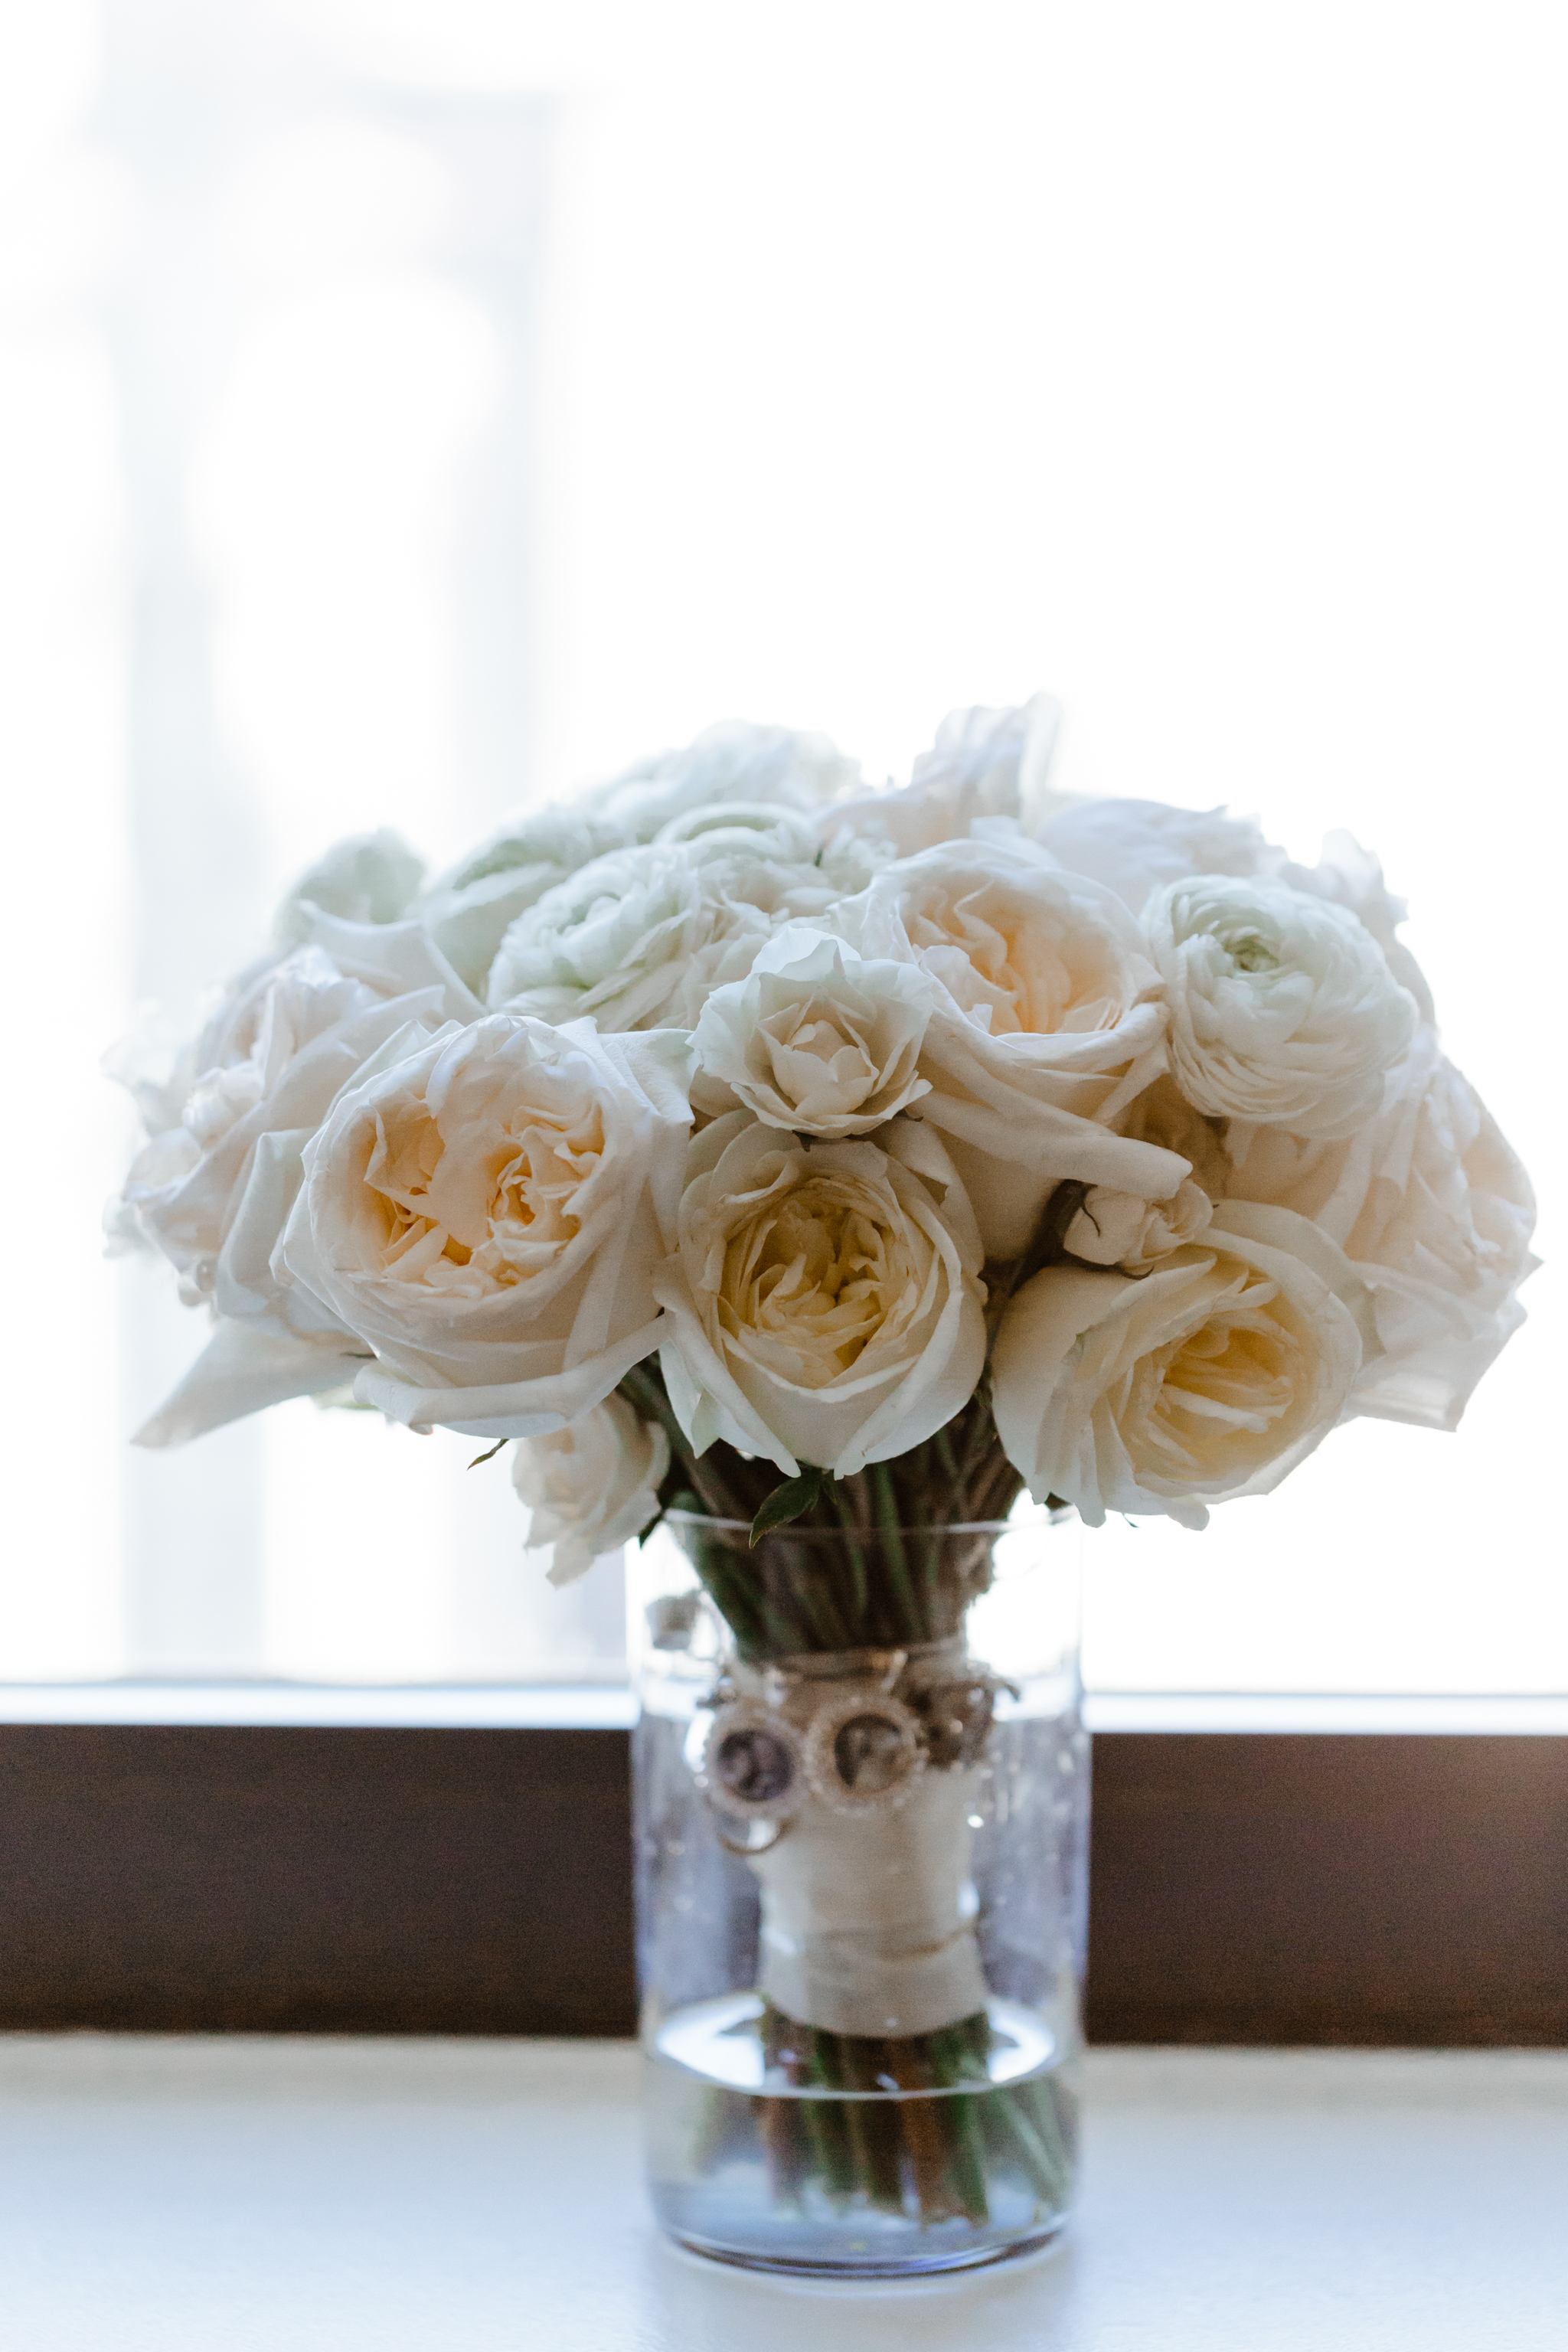 White floral bridal bouquet from Fleur in Logan Square Chicago, Illinois